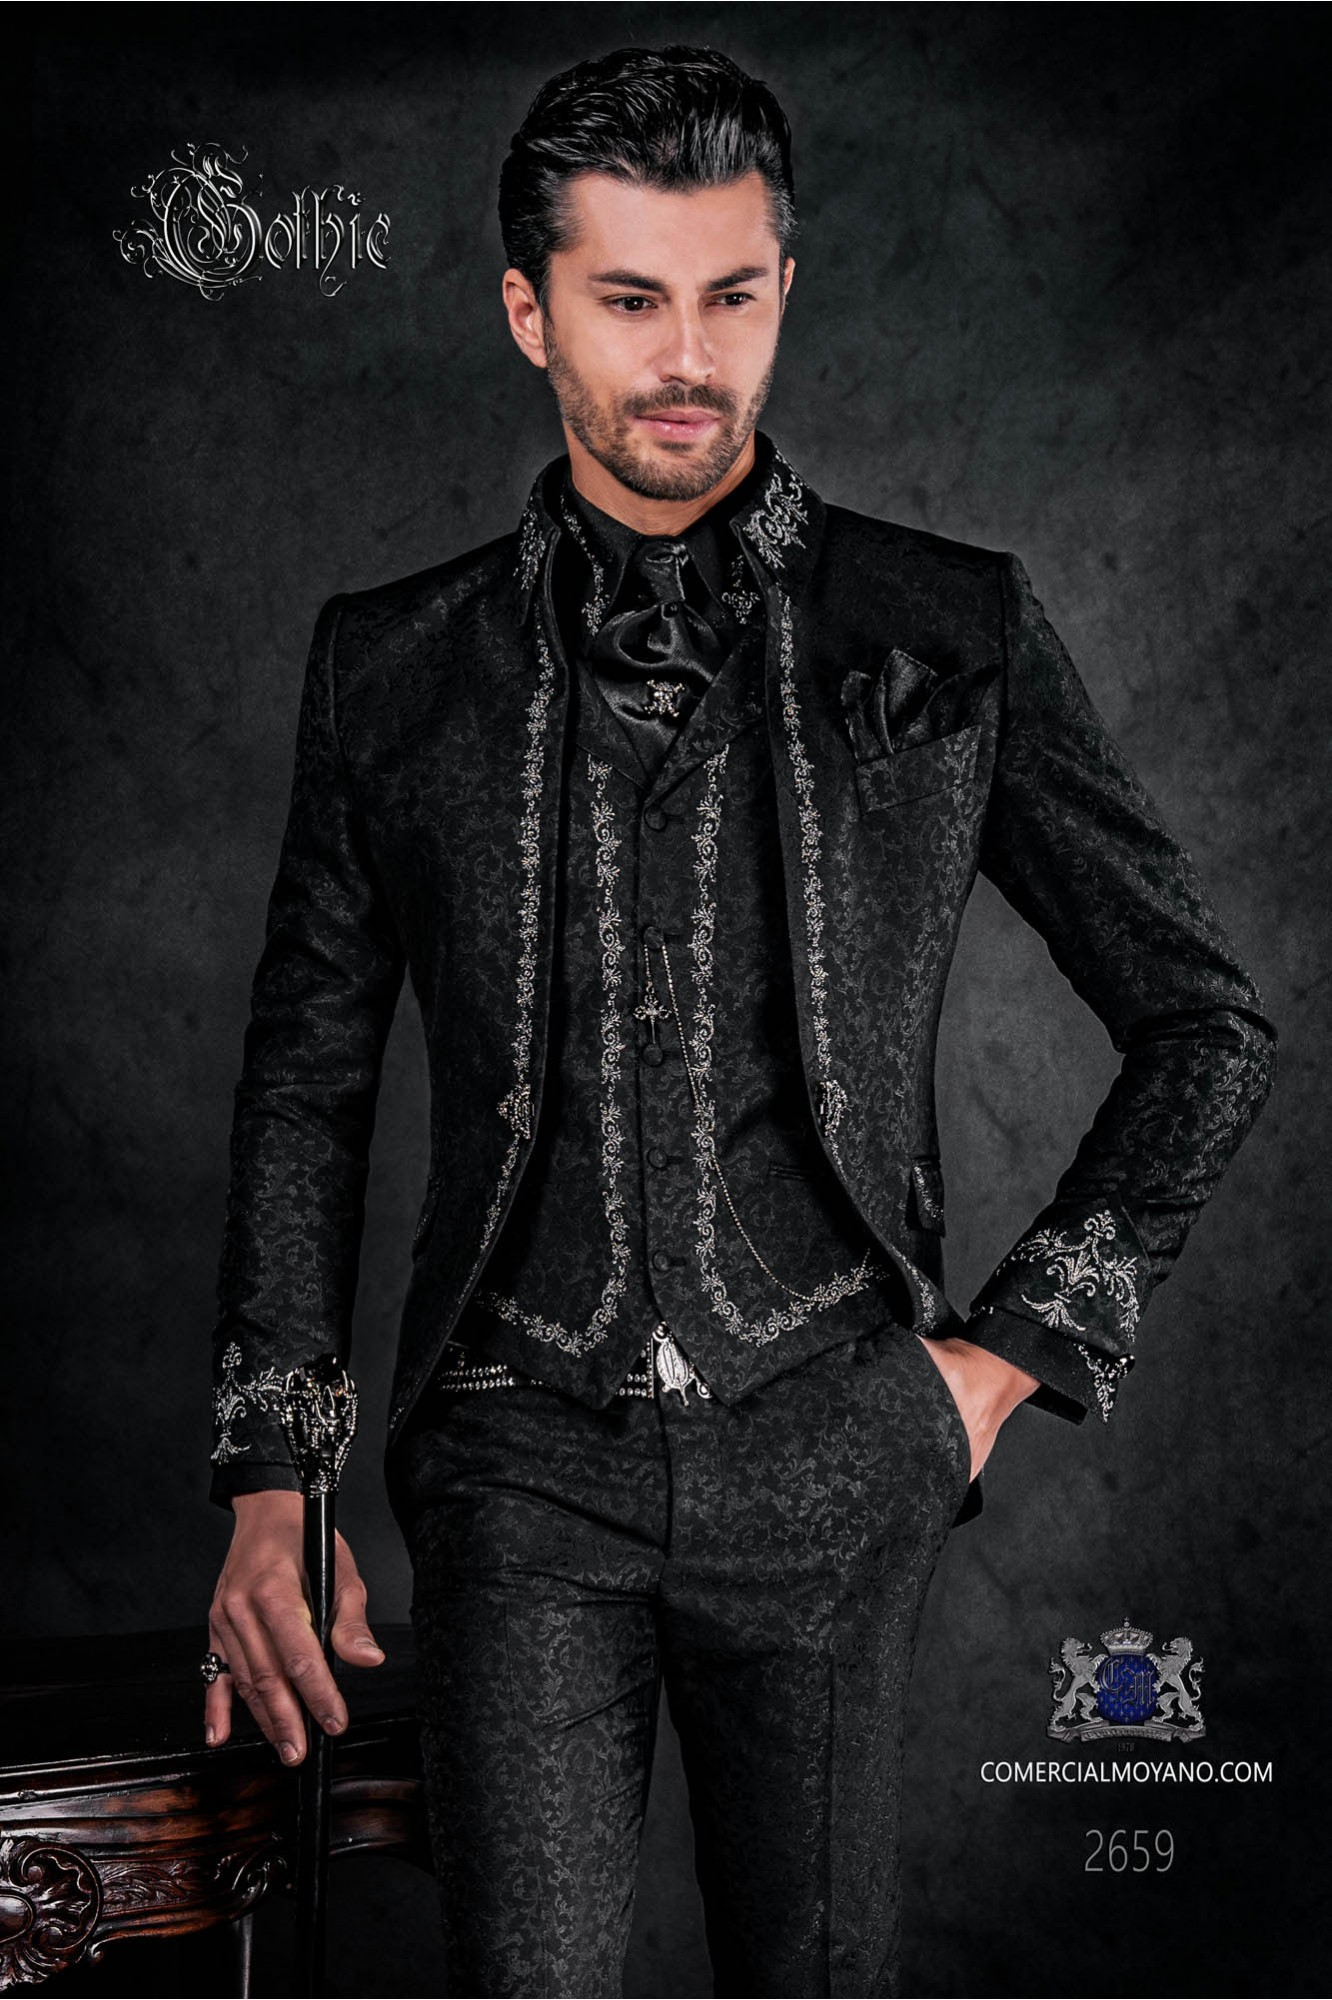 Victorian gothic style frock coat black brocade with silver embroidery